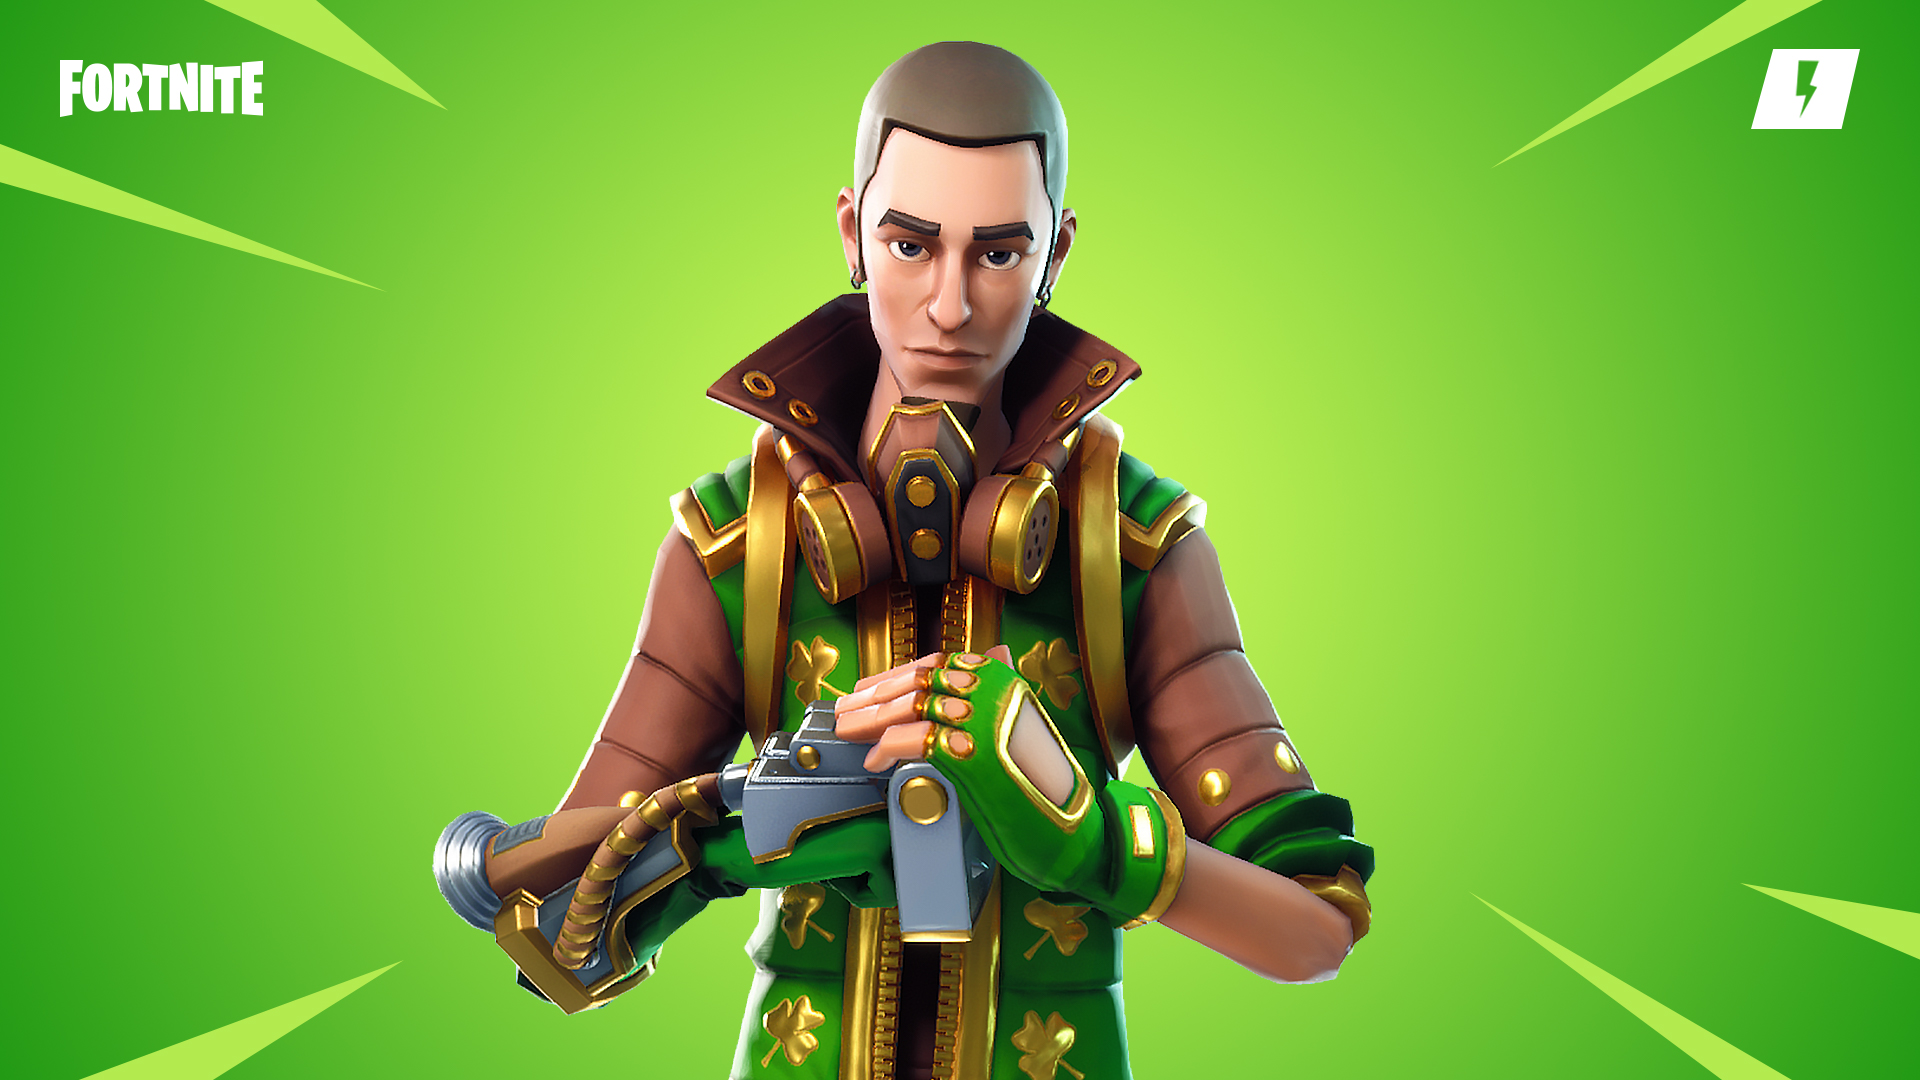 Fortnite Epic Is Adding An Undo Purchase Button To The